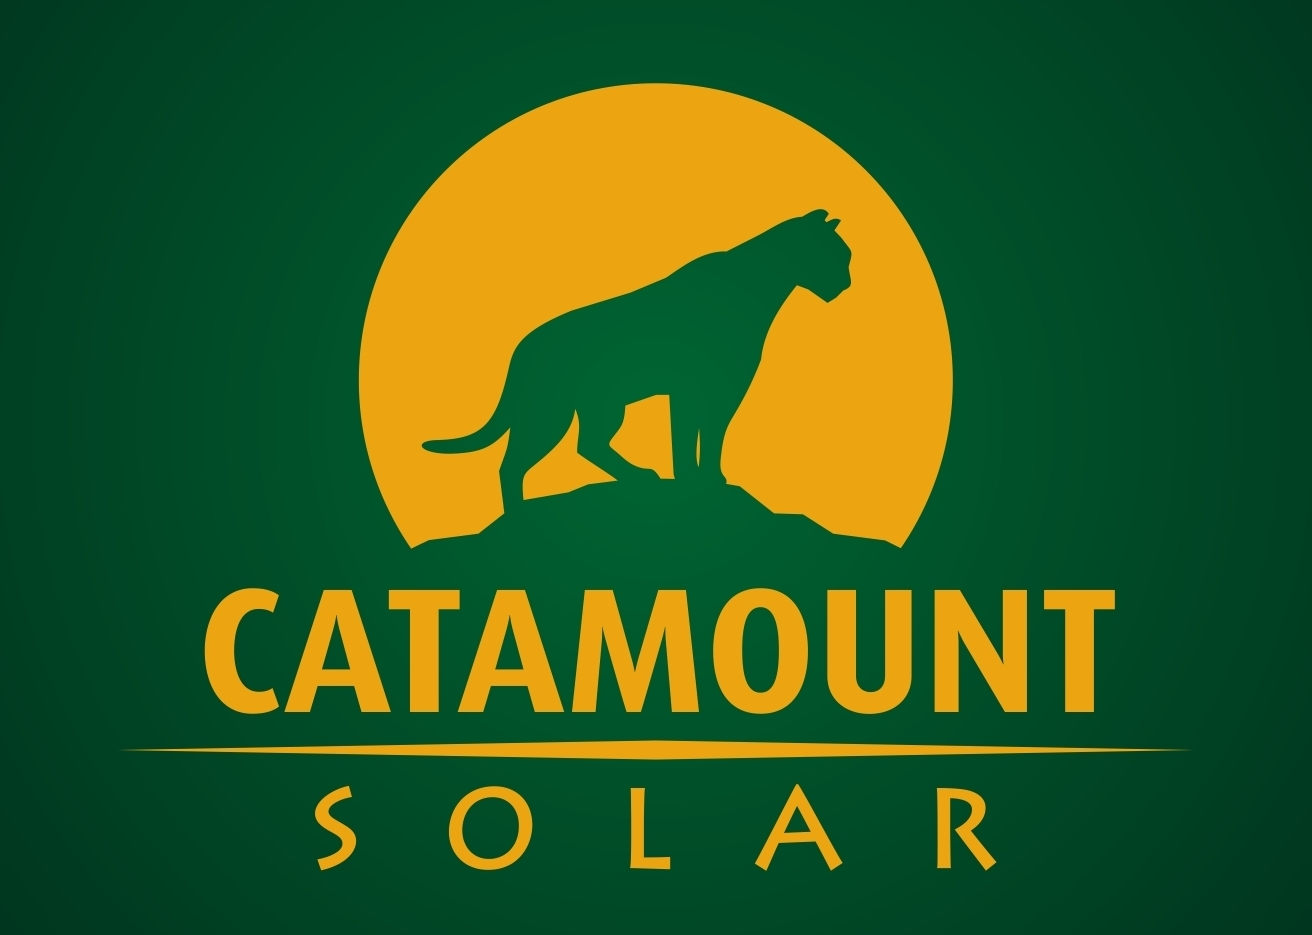 Catamount Solar - rectangular